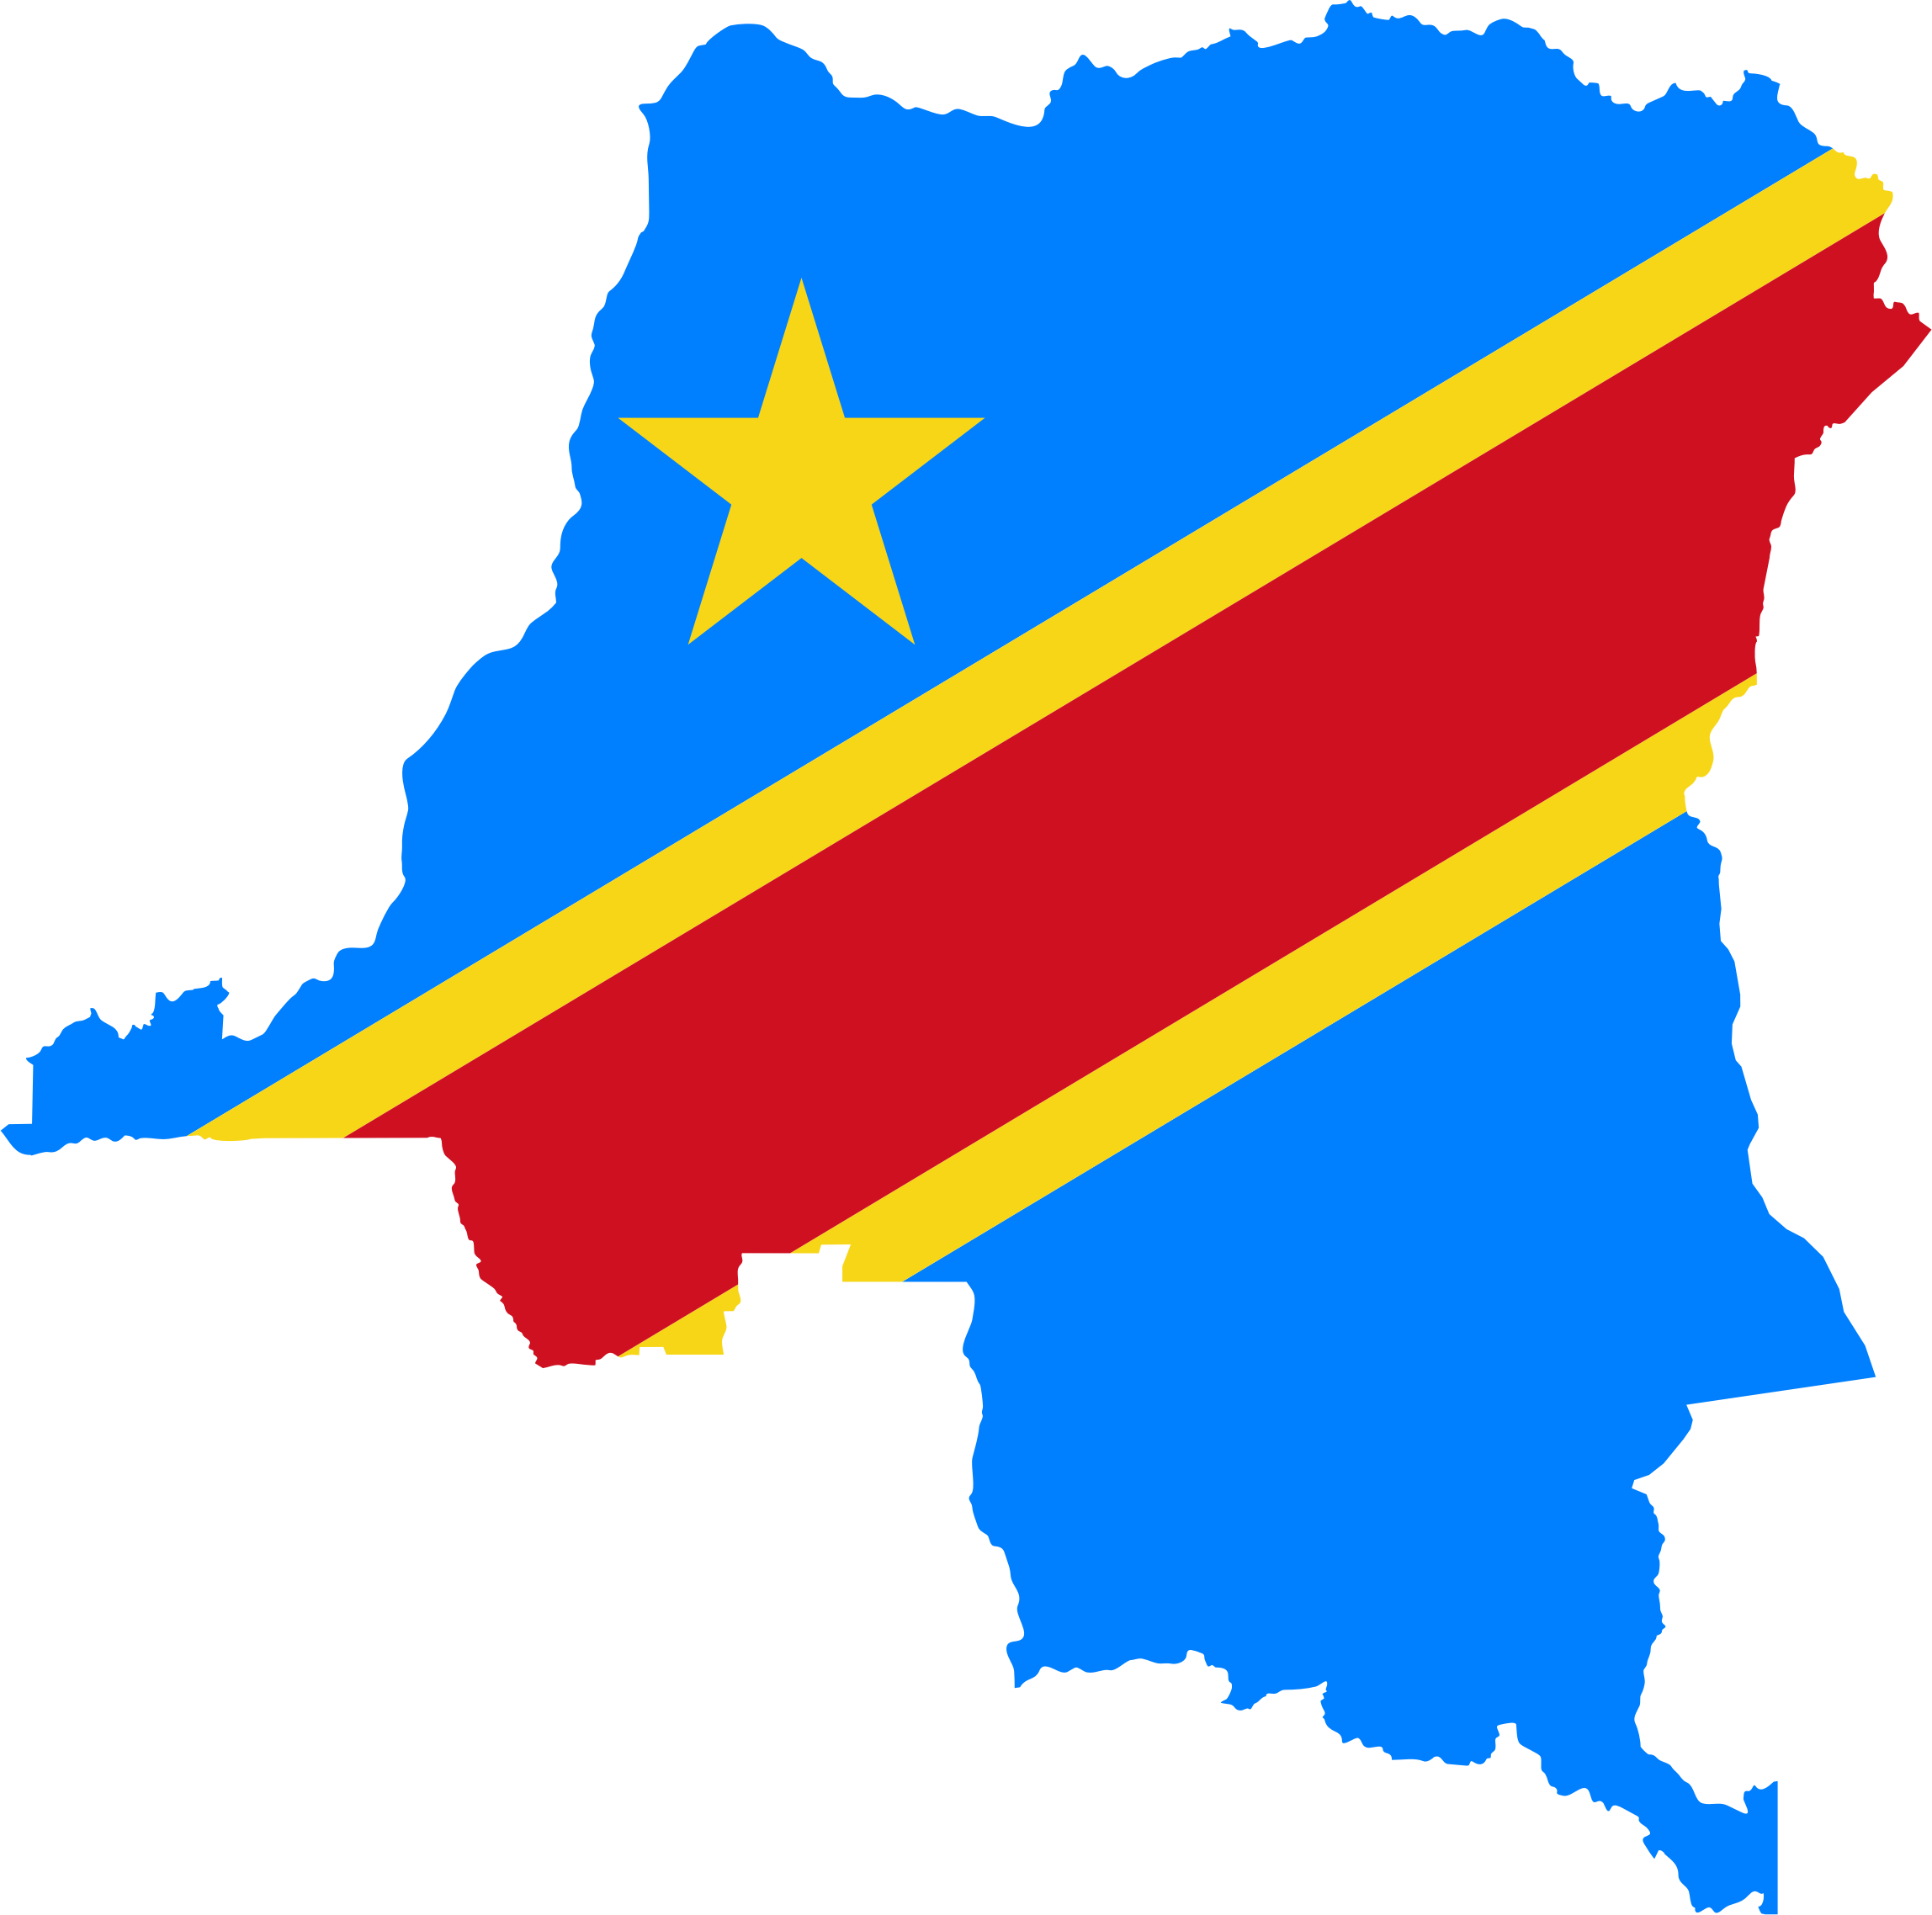 Democratic Republic Of The Congo Flag Map by GDJ